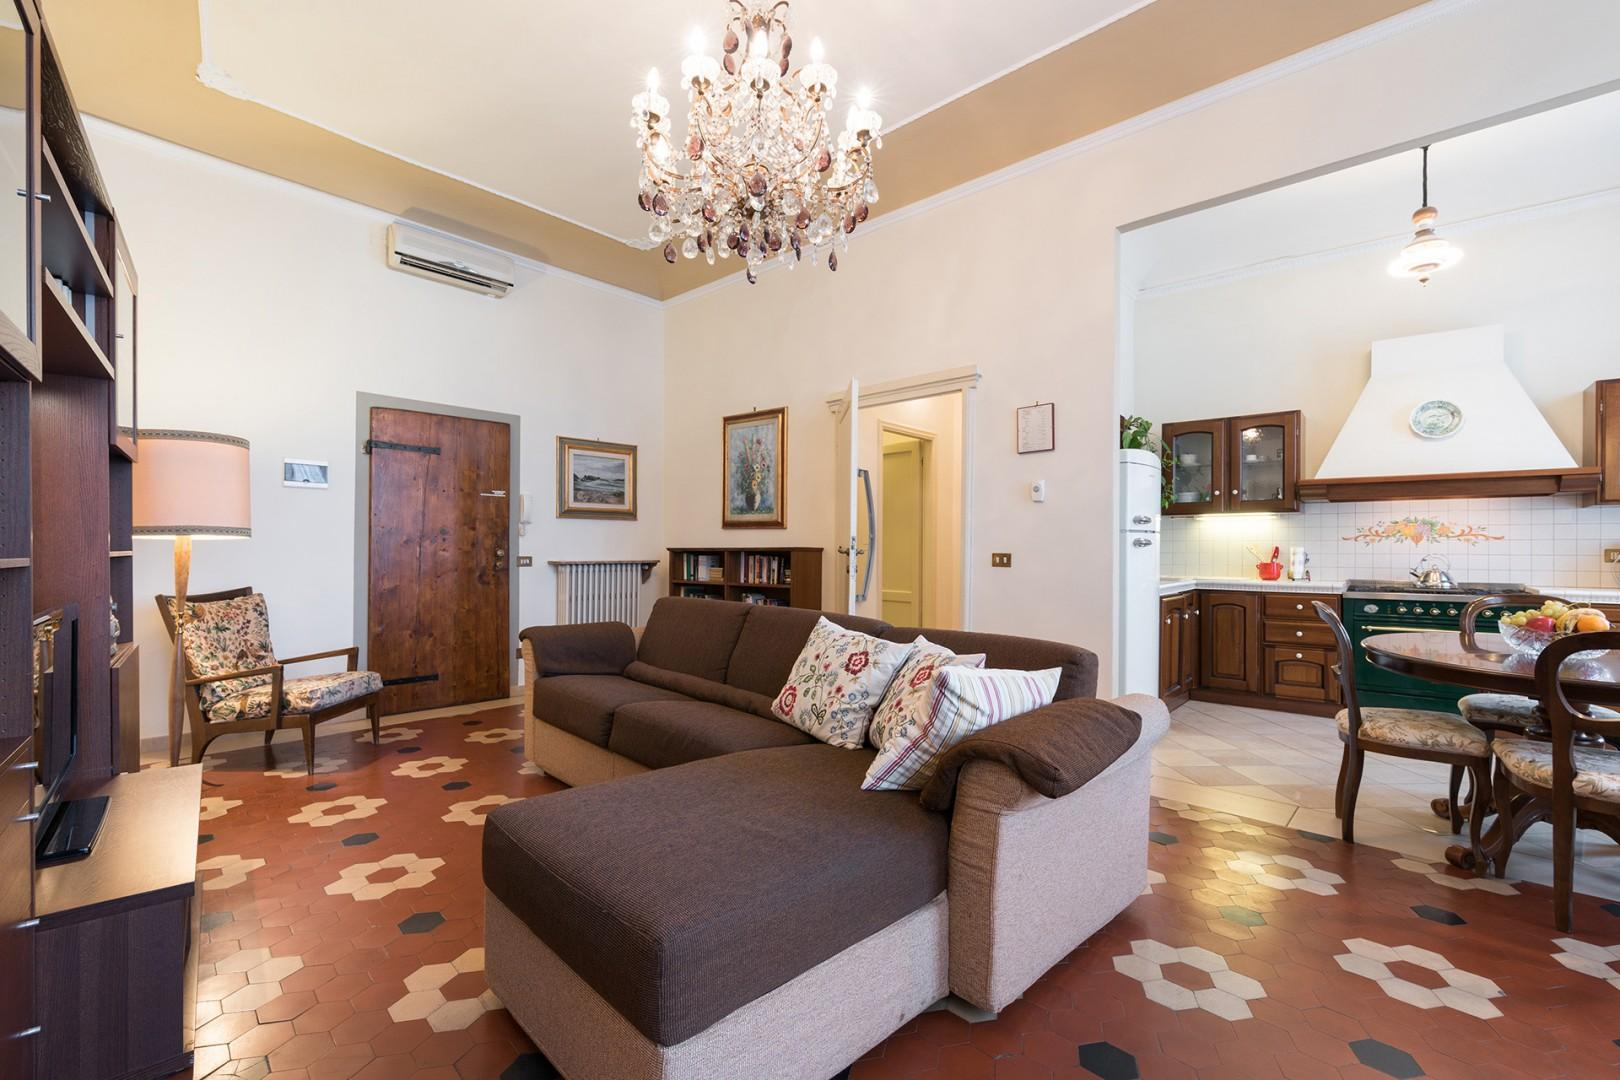 This large Florence vacation apartment has dramatic, high ceilings and beautiful arched windows.